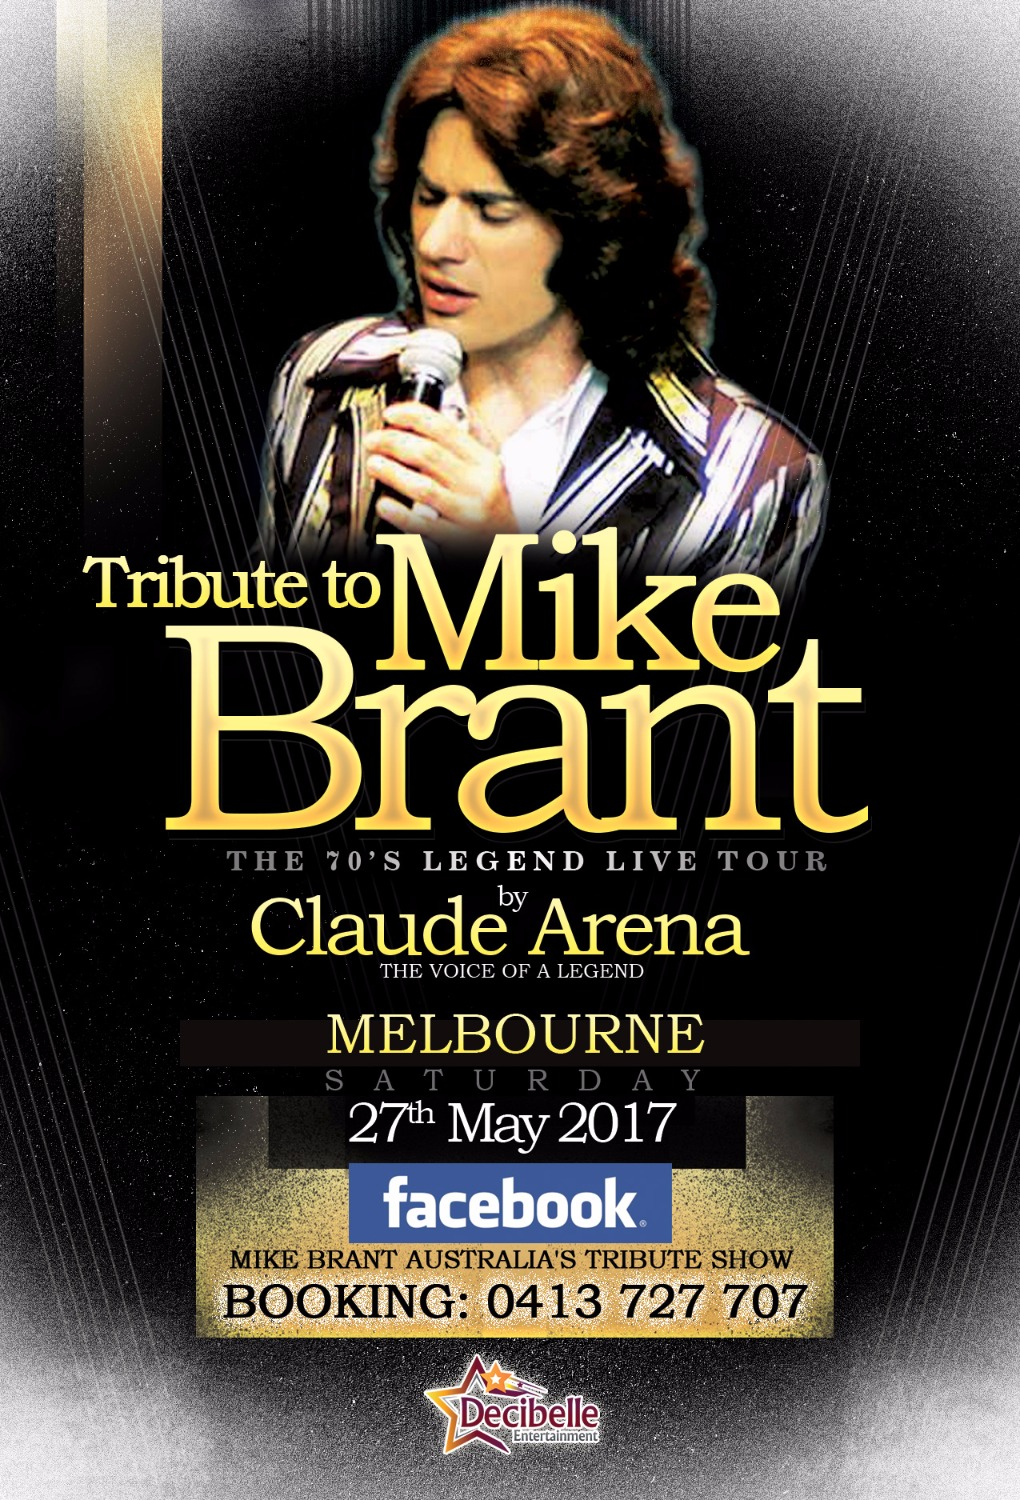 Mike Brant Tribute Show